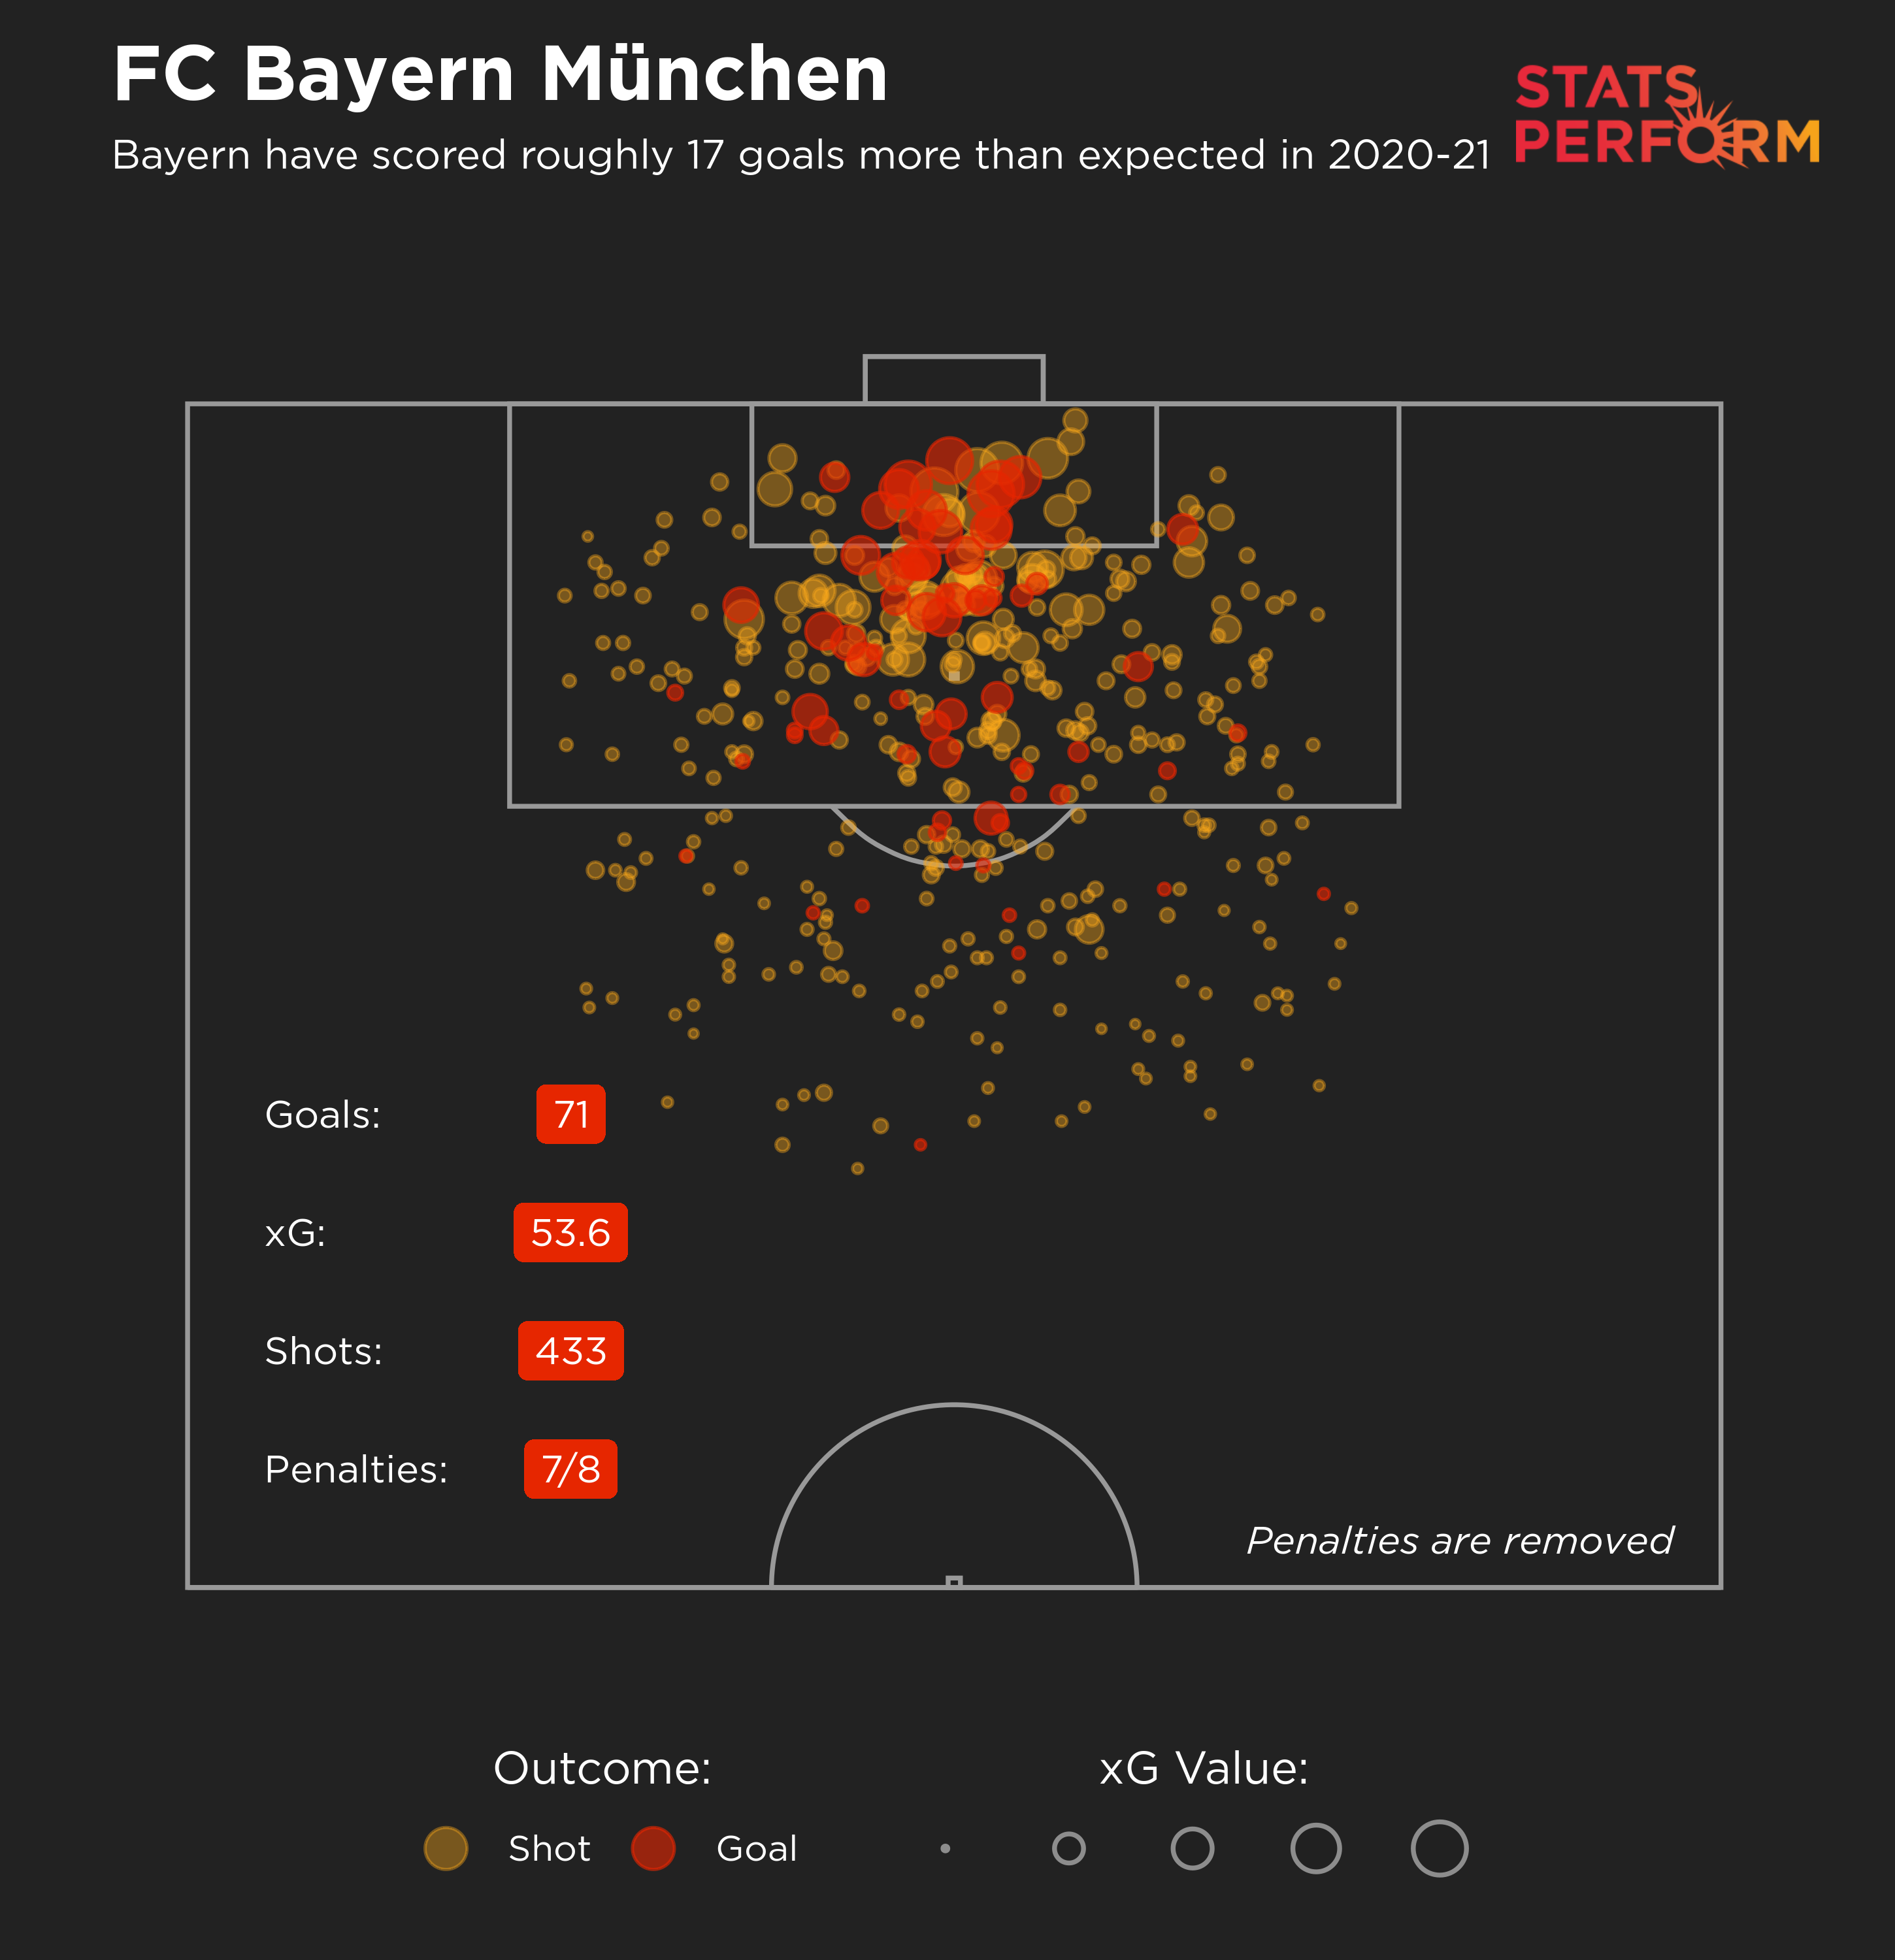 Bayern Munich are averaging three goals a game this season and have netted roughly 17 times more than they would be expected to given the quality of their chances